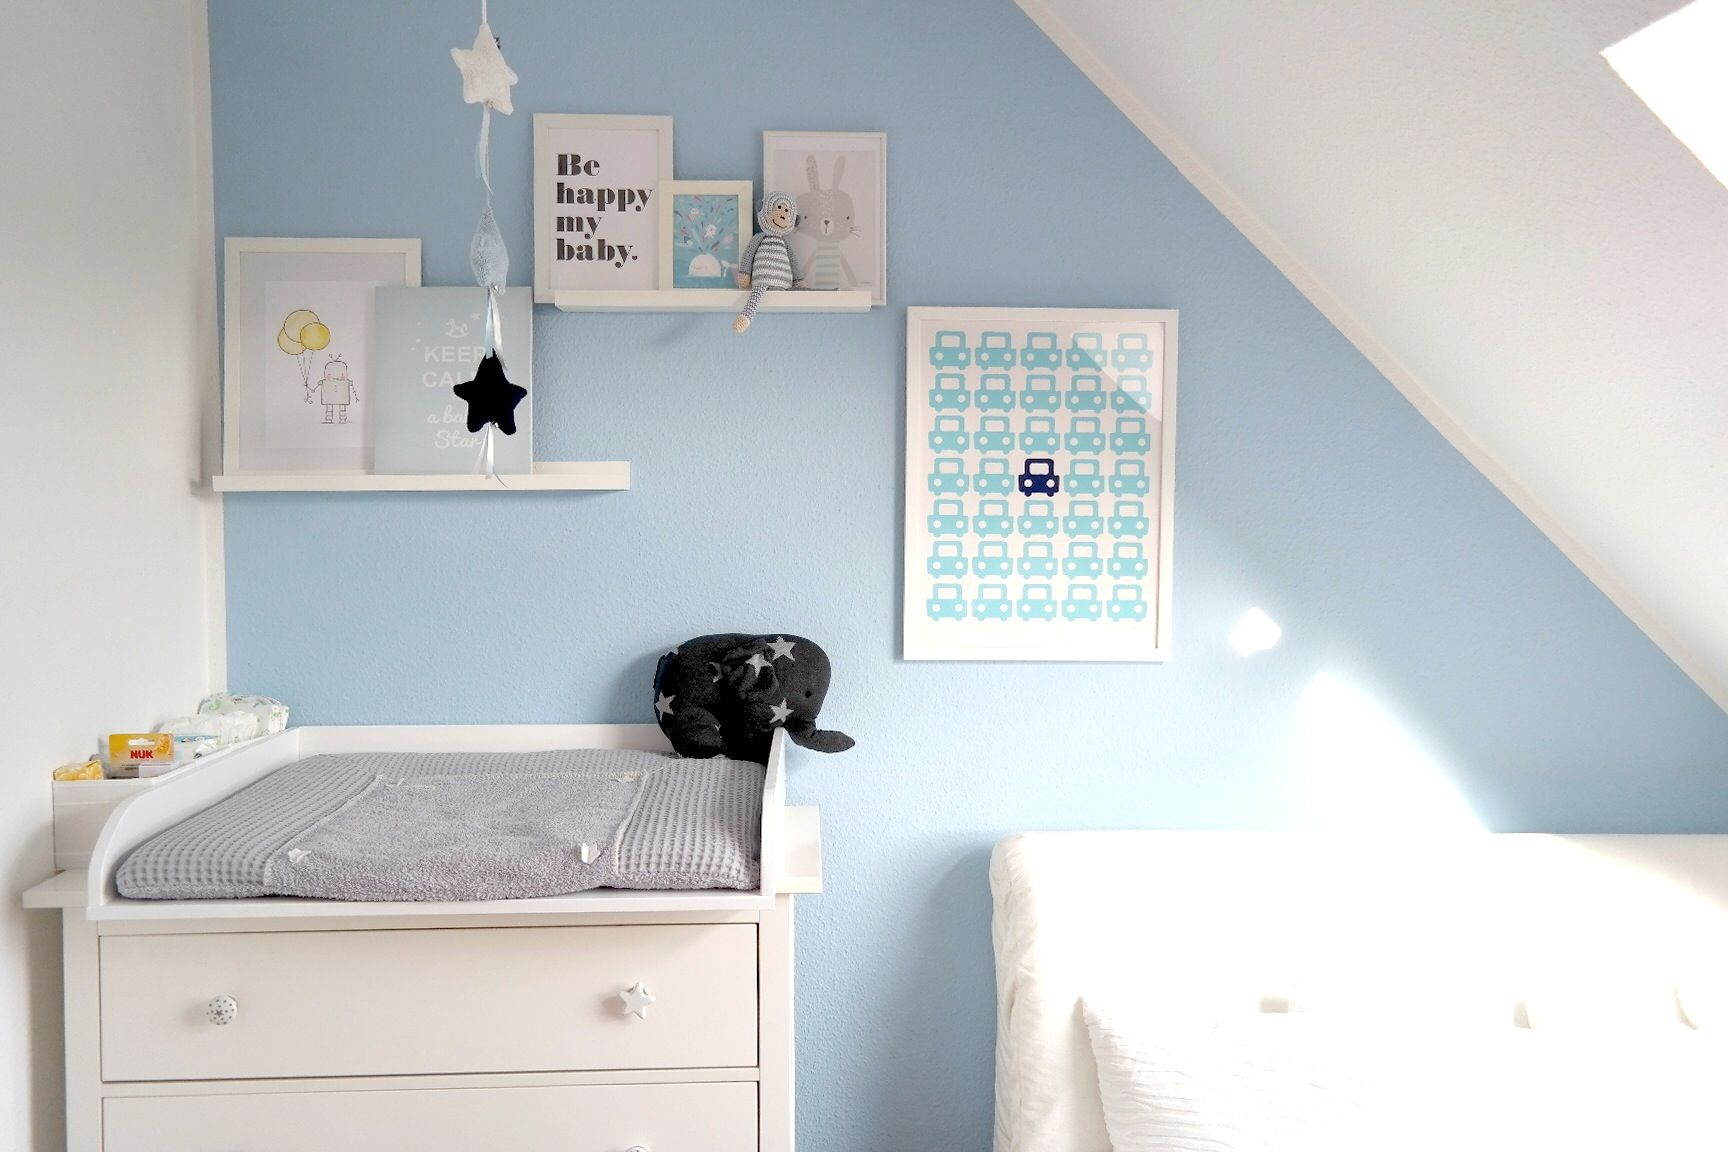 Babyzimmer bilder collage wand elefant mobilee baby 39 s only ikea hemnes wickelkommode koeka - Bilder collage wand ...